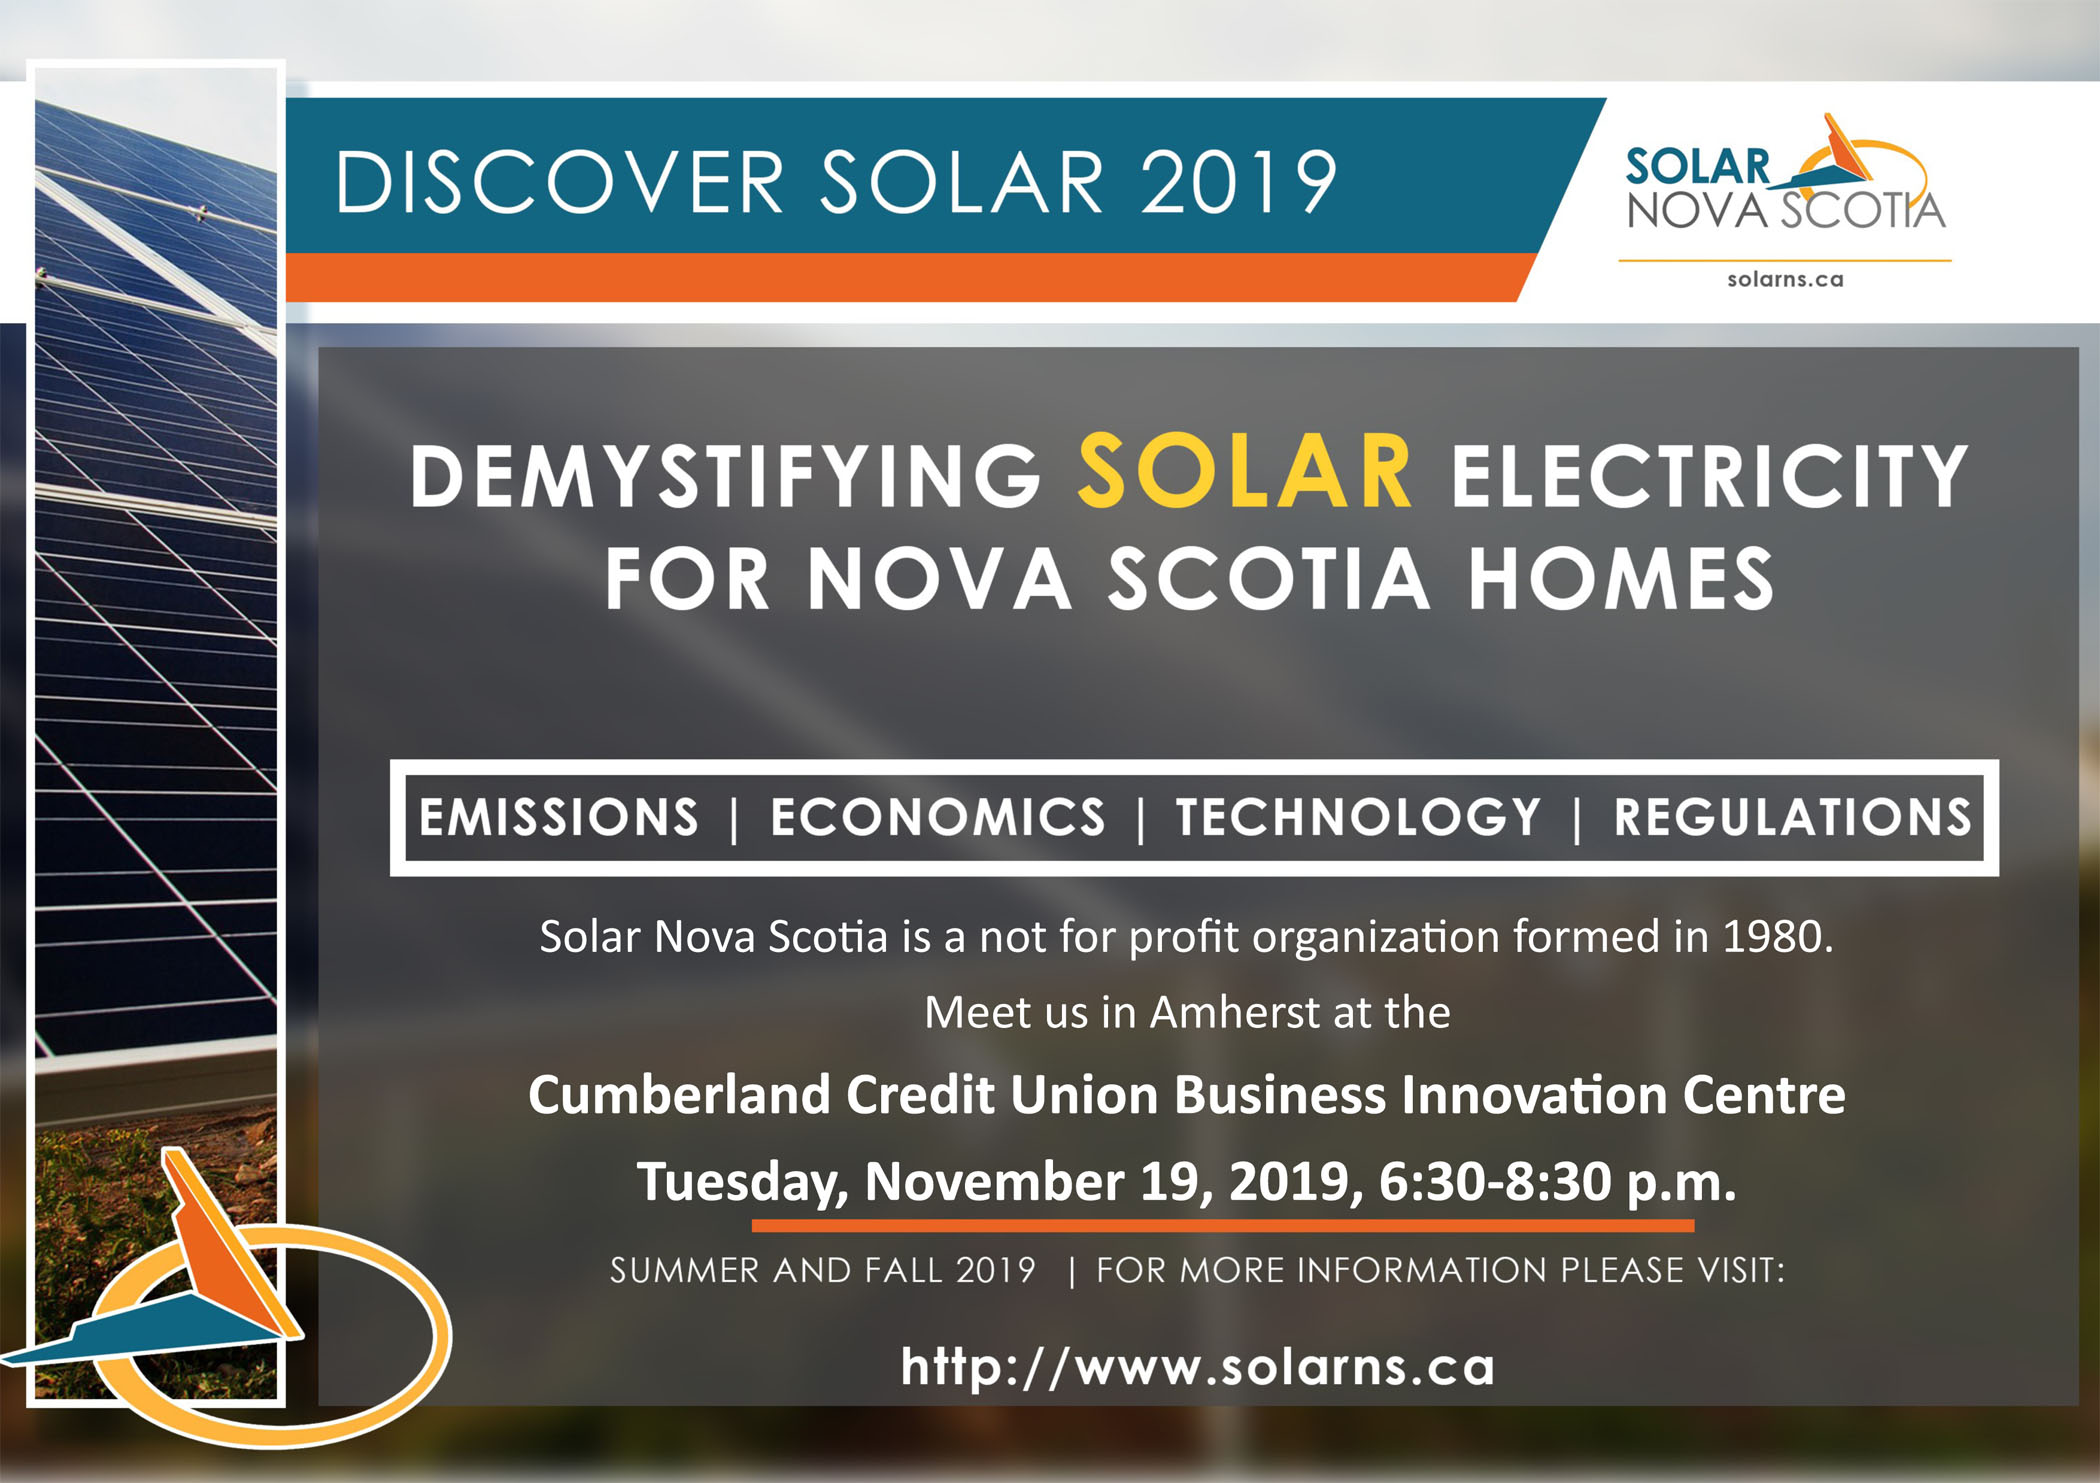 Discover Solar Poster for Amherst Nov 19 2019